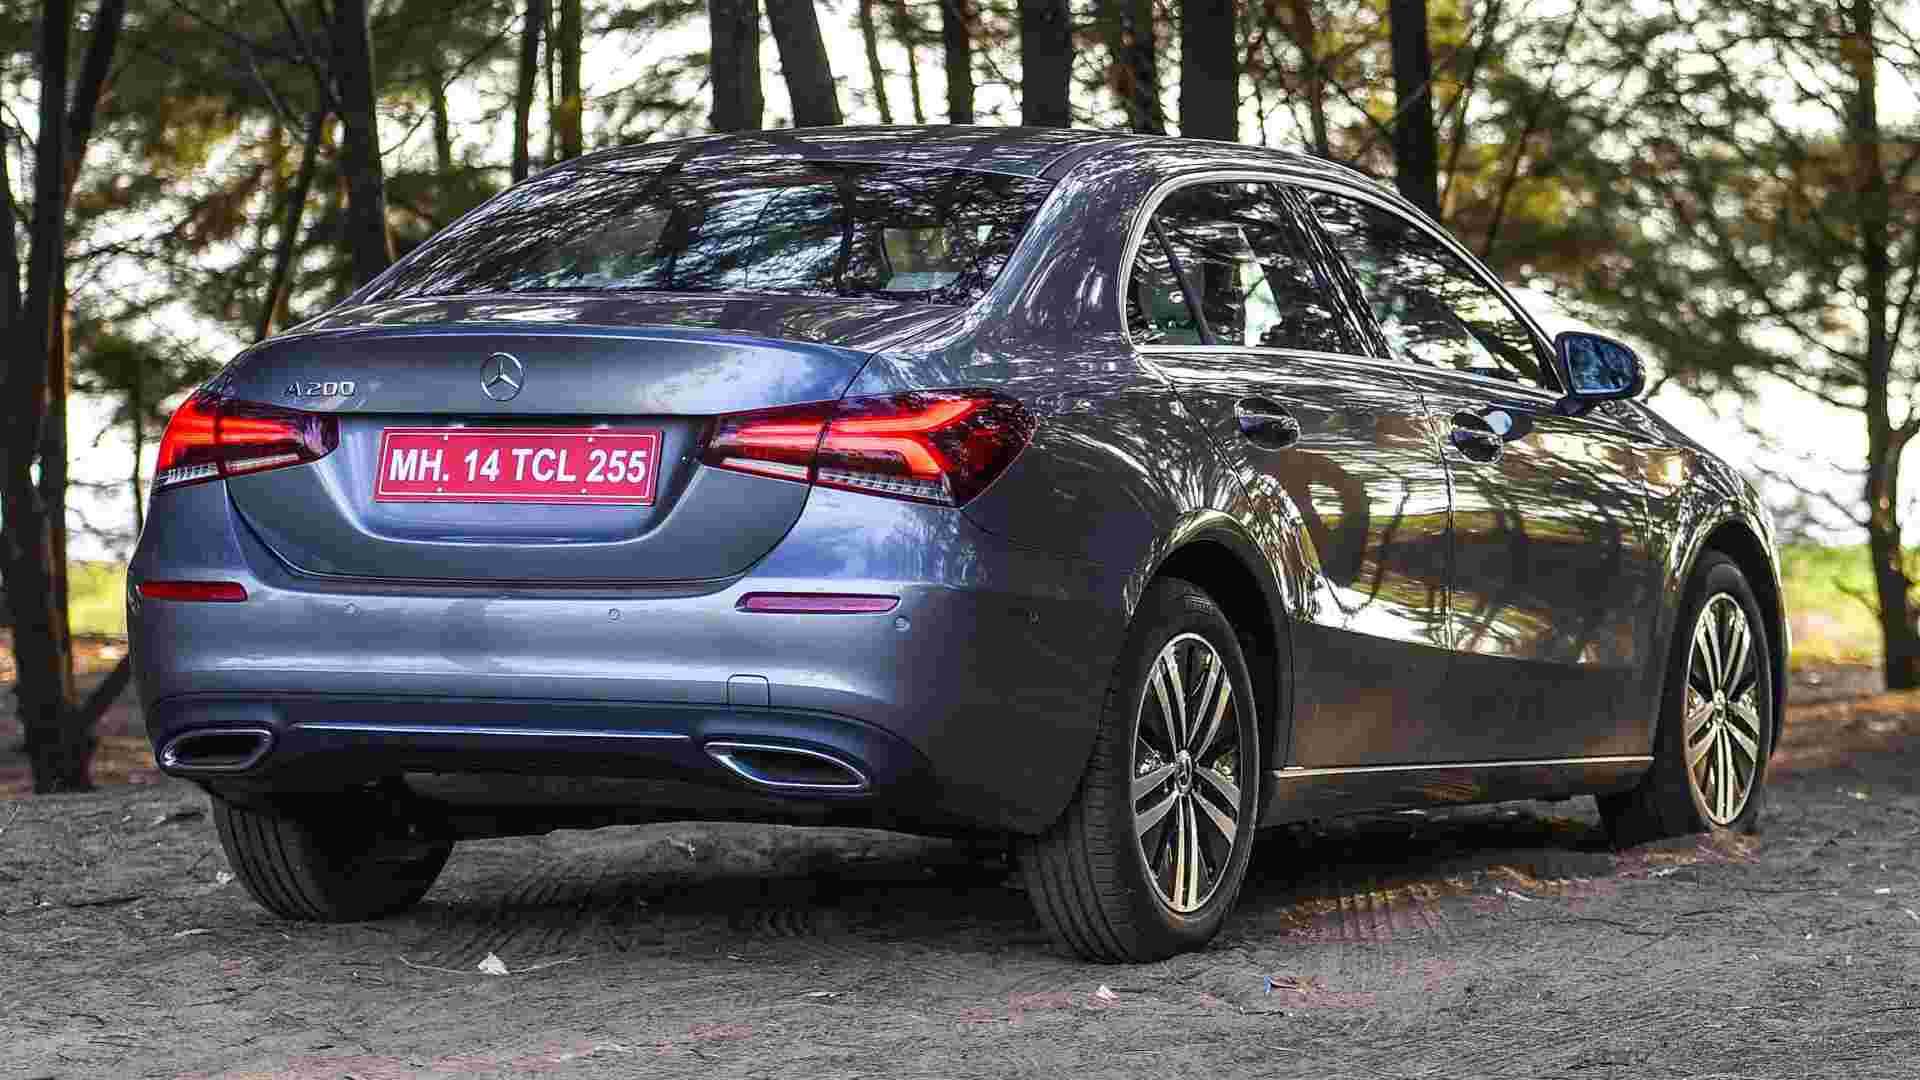 The Mercedes A-Class Limousine's prices in India are expected to be upwards of Rs 40 lakh. (ex-showroom). Image: Overdrive/Anis Shaikh